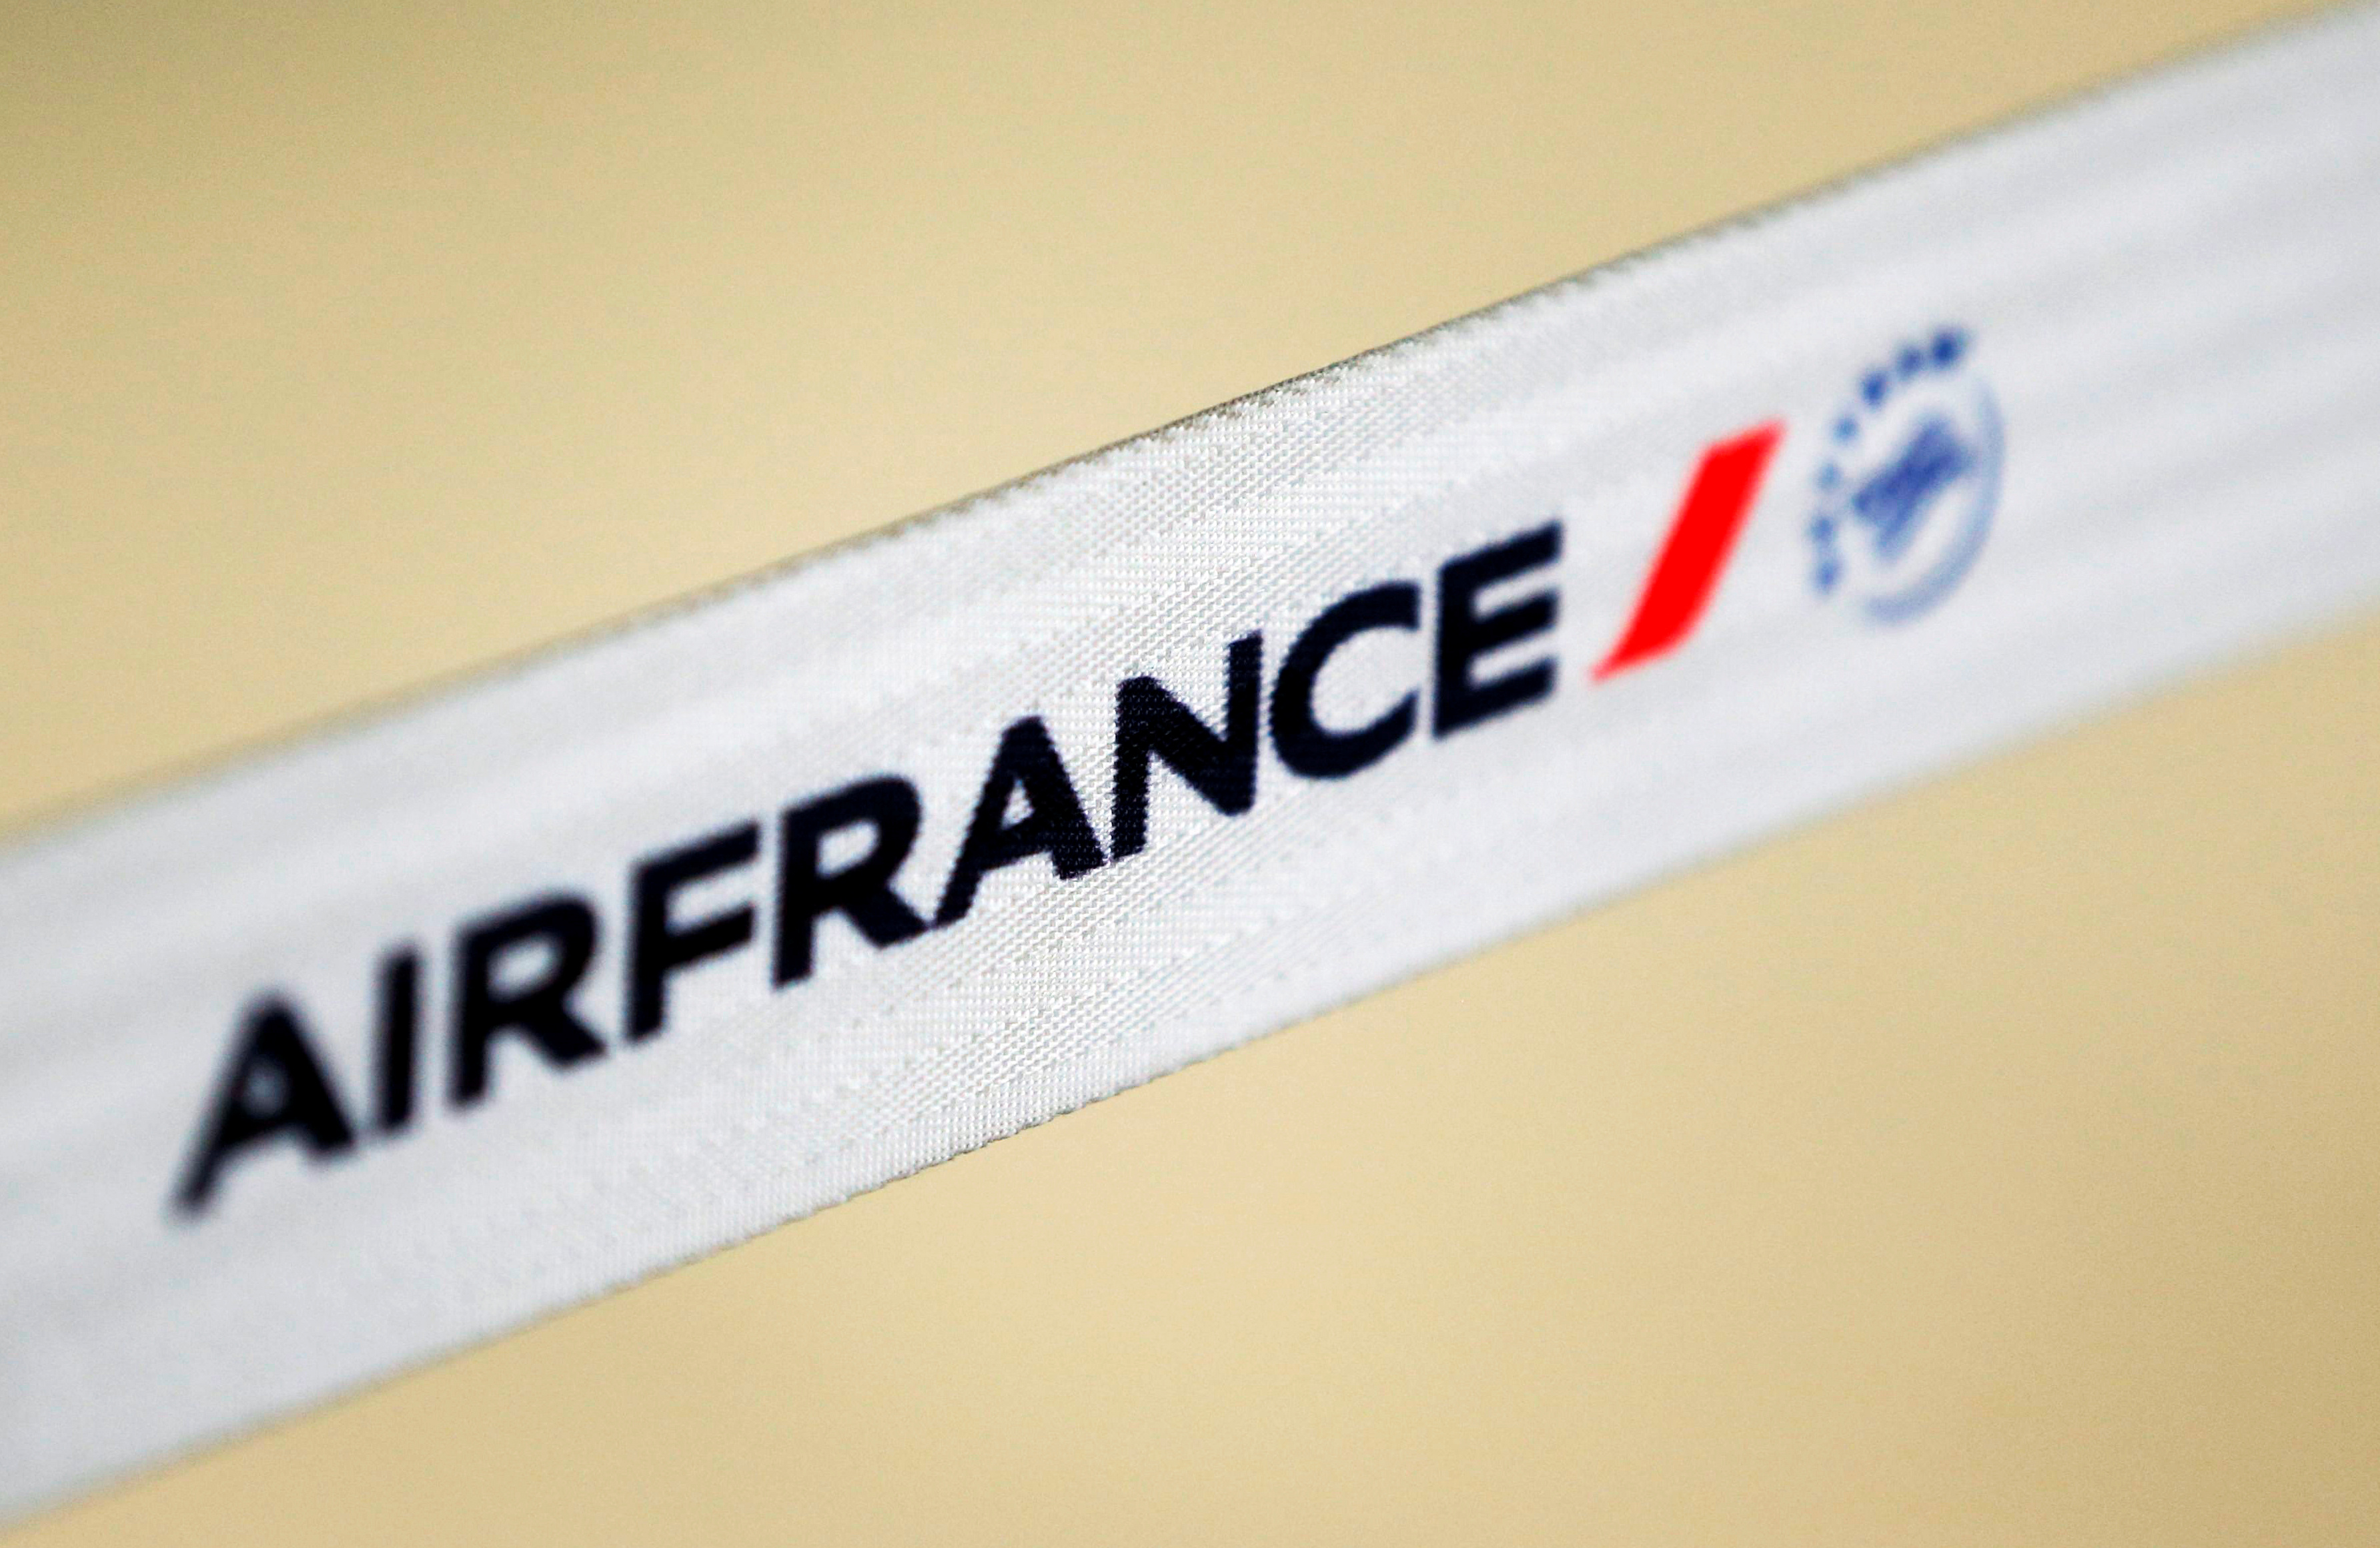 Air France logo is pictured at the Air France check-in at Bordeaux-Merignac airport, as Air France pilots, cabin and ground crews unions call for a strike over salaries in Merignac near Bordeaux, France April 7, 2018. REUTERS/Regis Duvignau